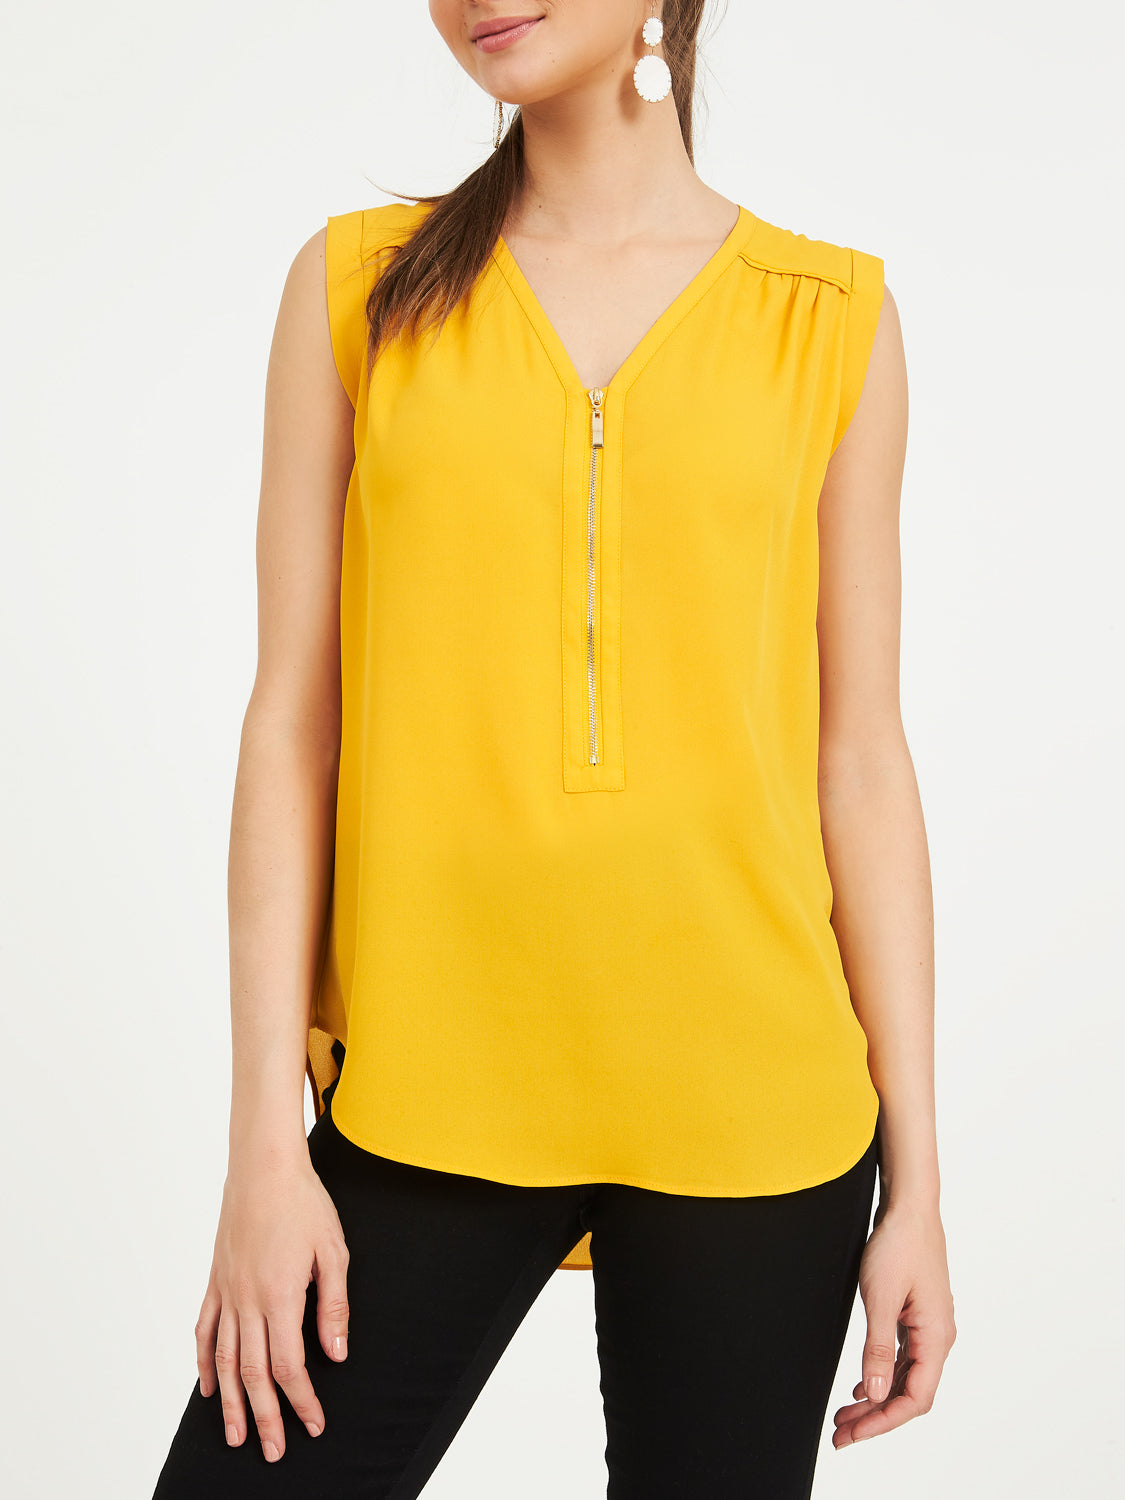 Sleeveless Blouse With Front Zipper